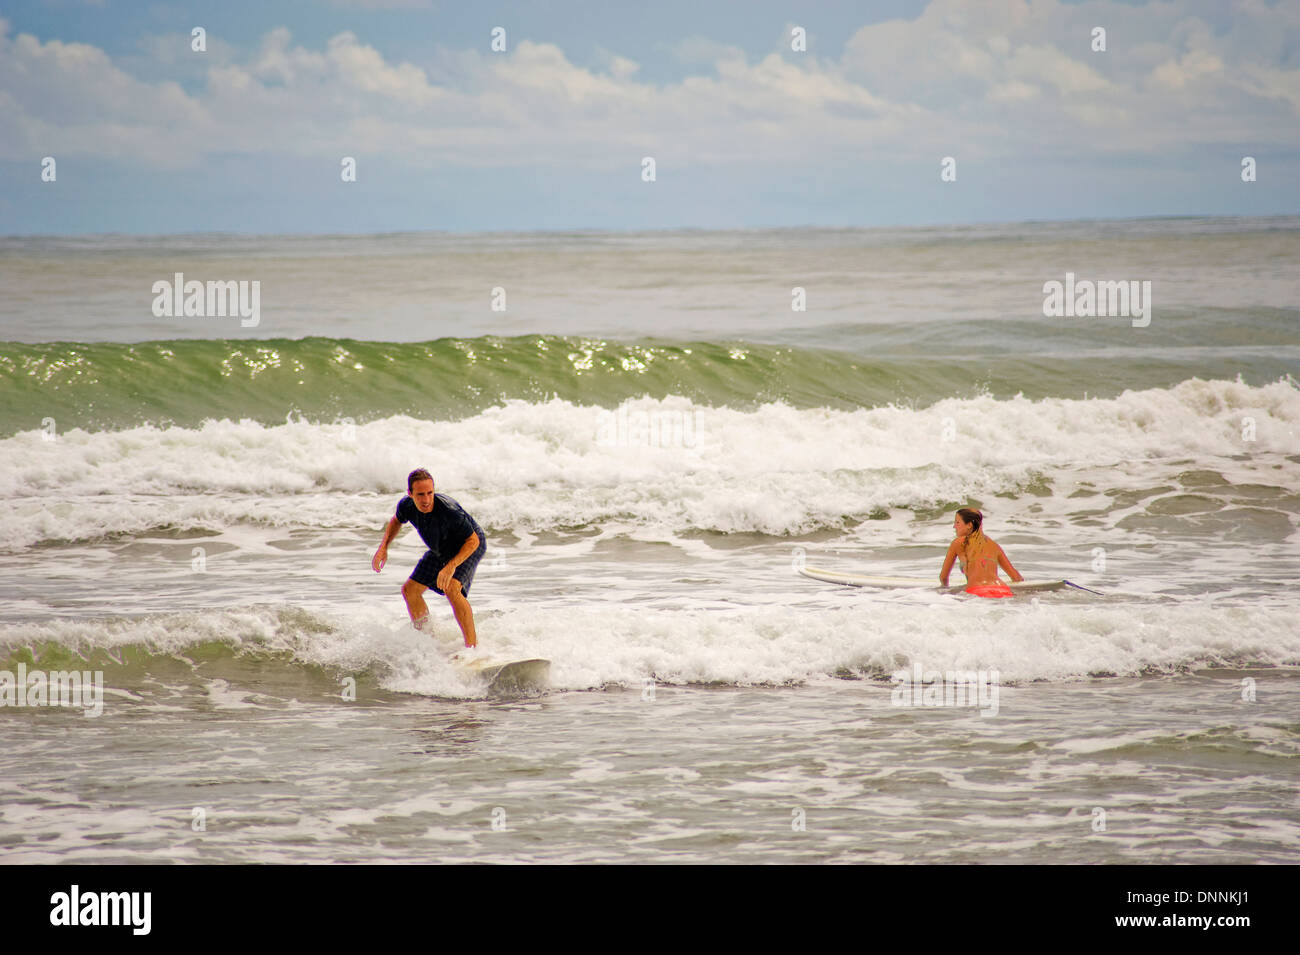 Surfing on the beaches of Dominical, Costa Rica - Stock Image